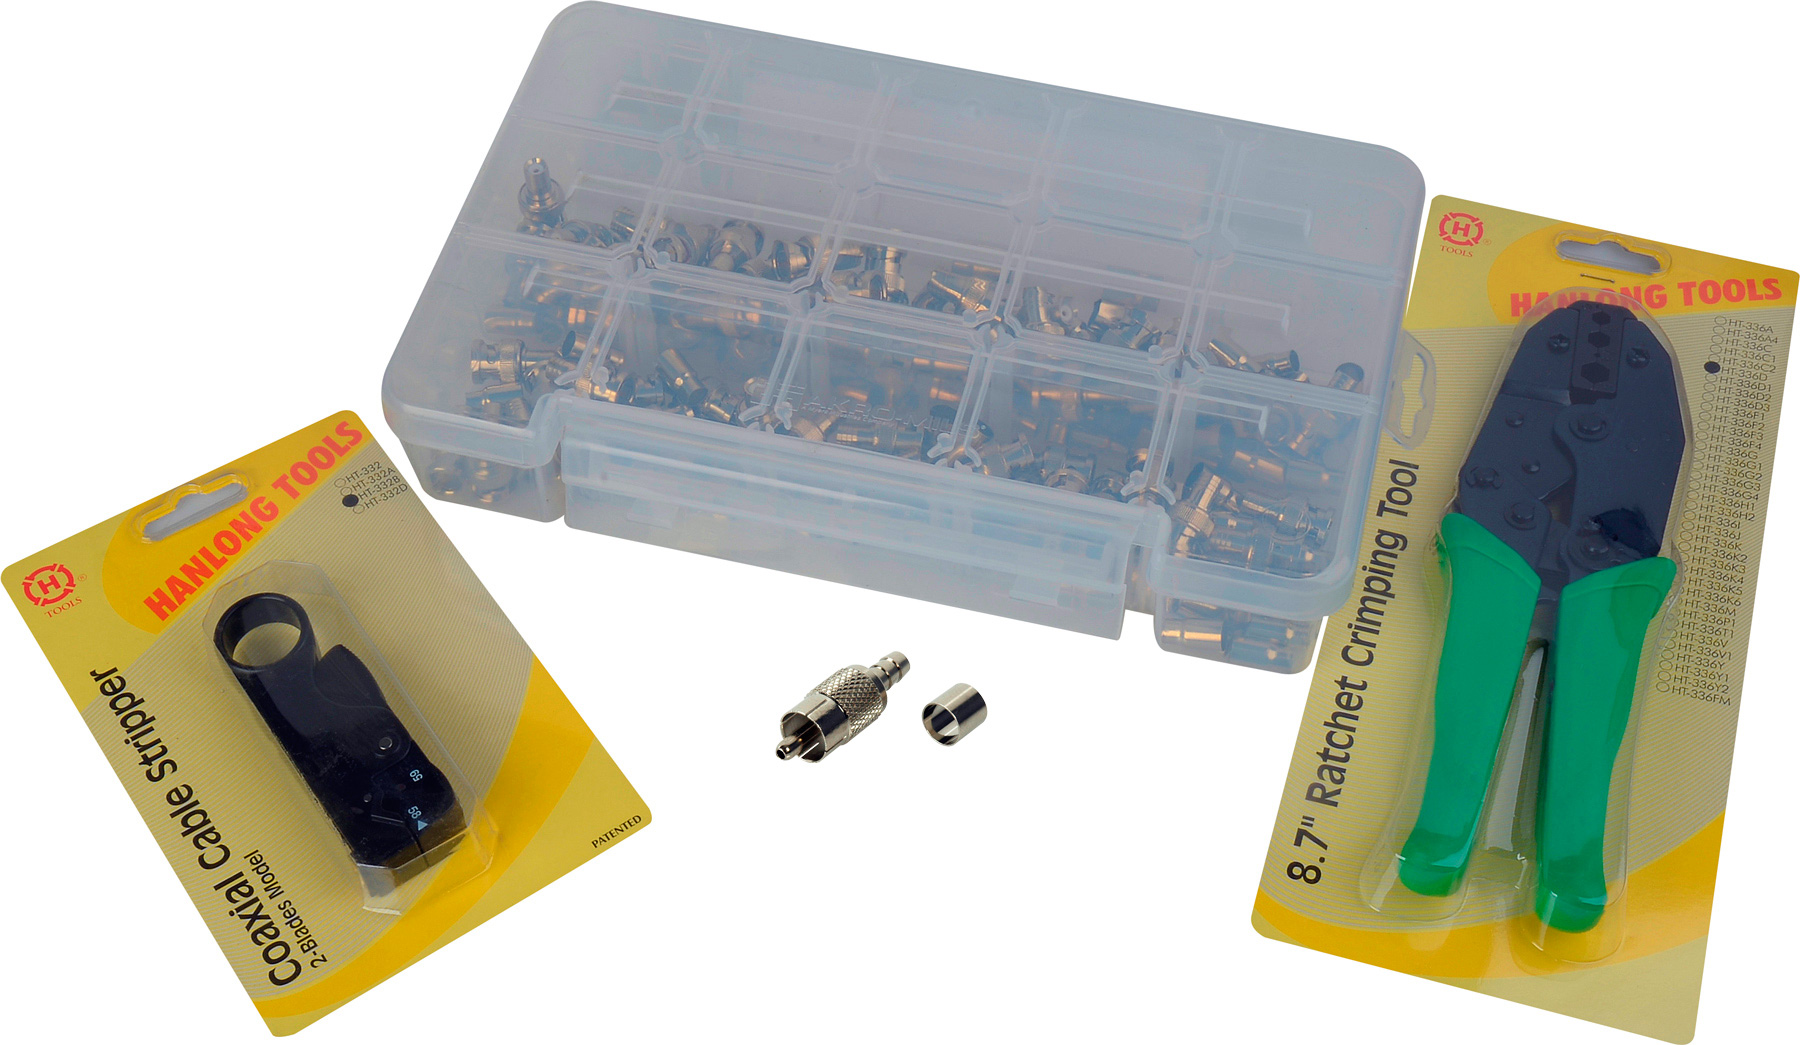 Adapter & Connector Kits